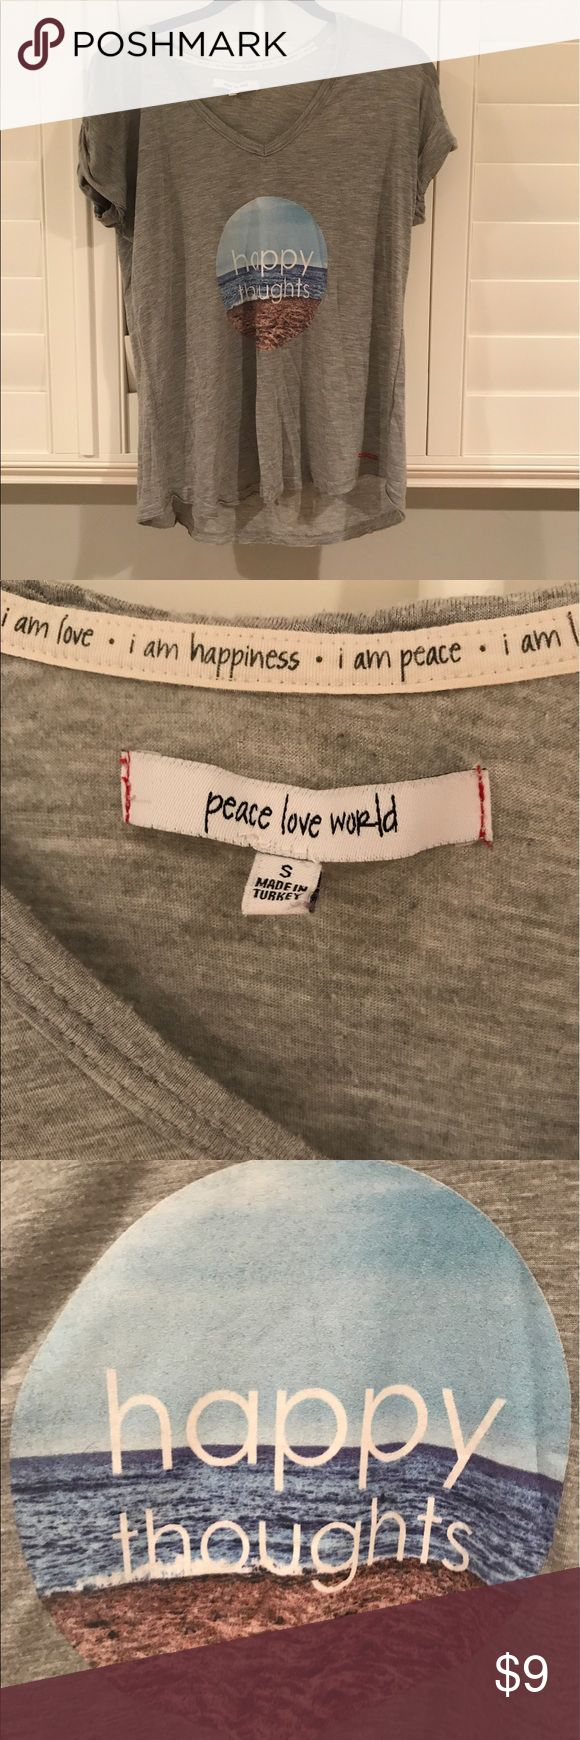 Peace Love World happy thoughts printed tshirt Great condition (some pulling - shown in photos), lots of love left and great mantra, very popular brand in Miami, great material and awesome for working out or wearing casually peace love world Tops Tees - Short Sleeve